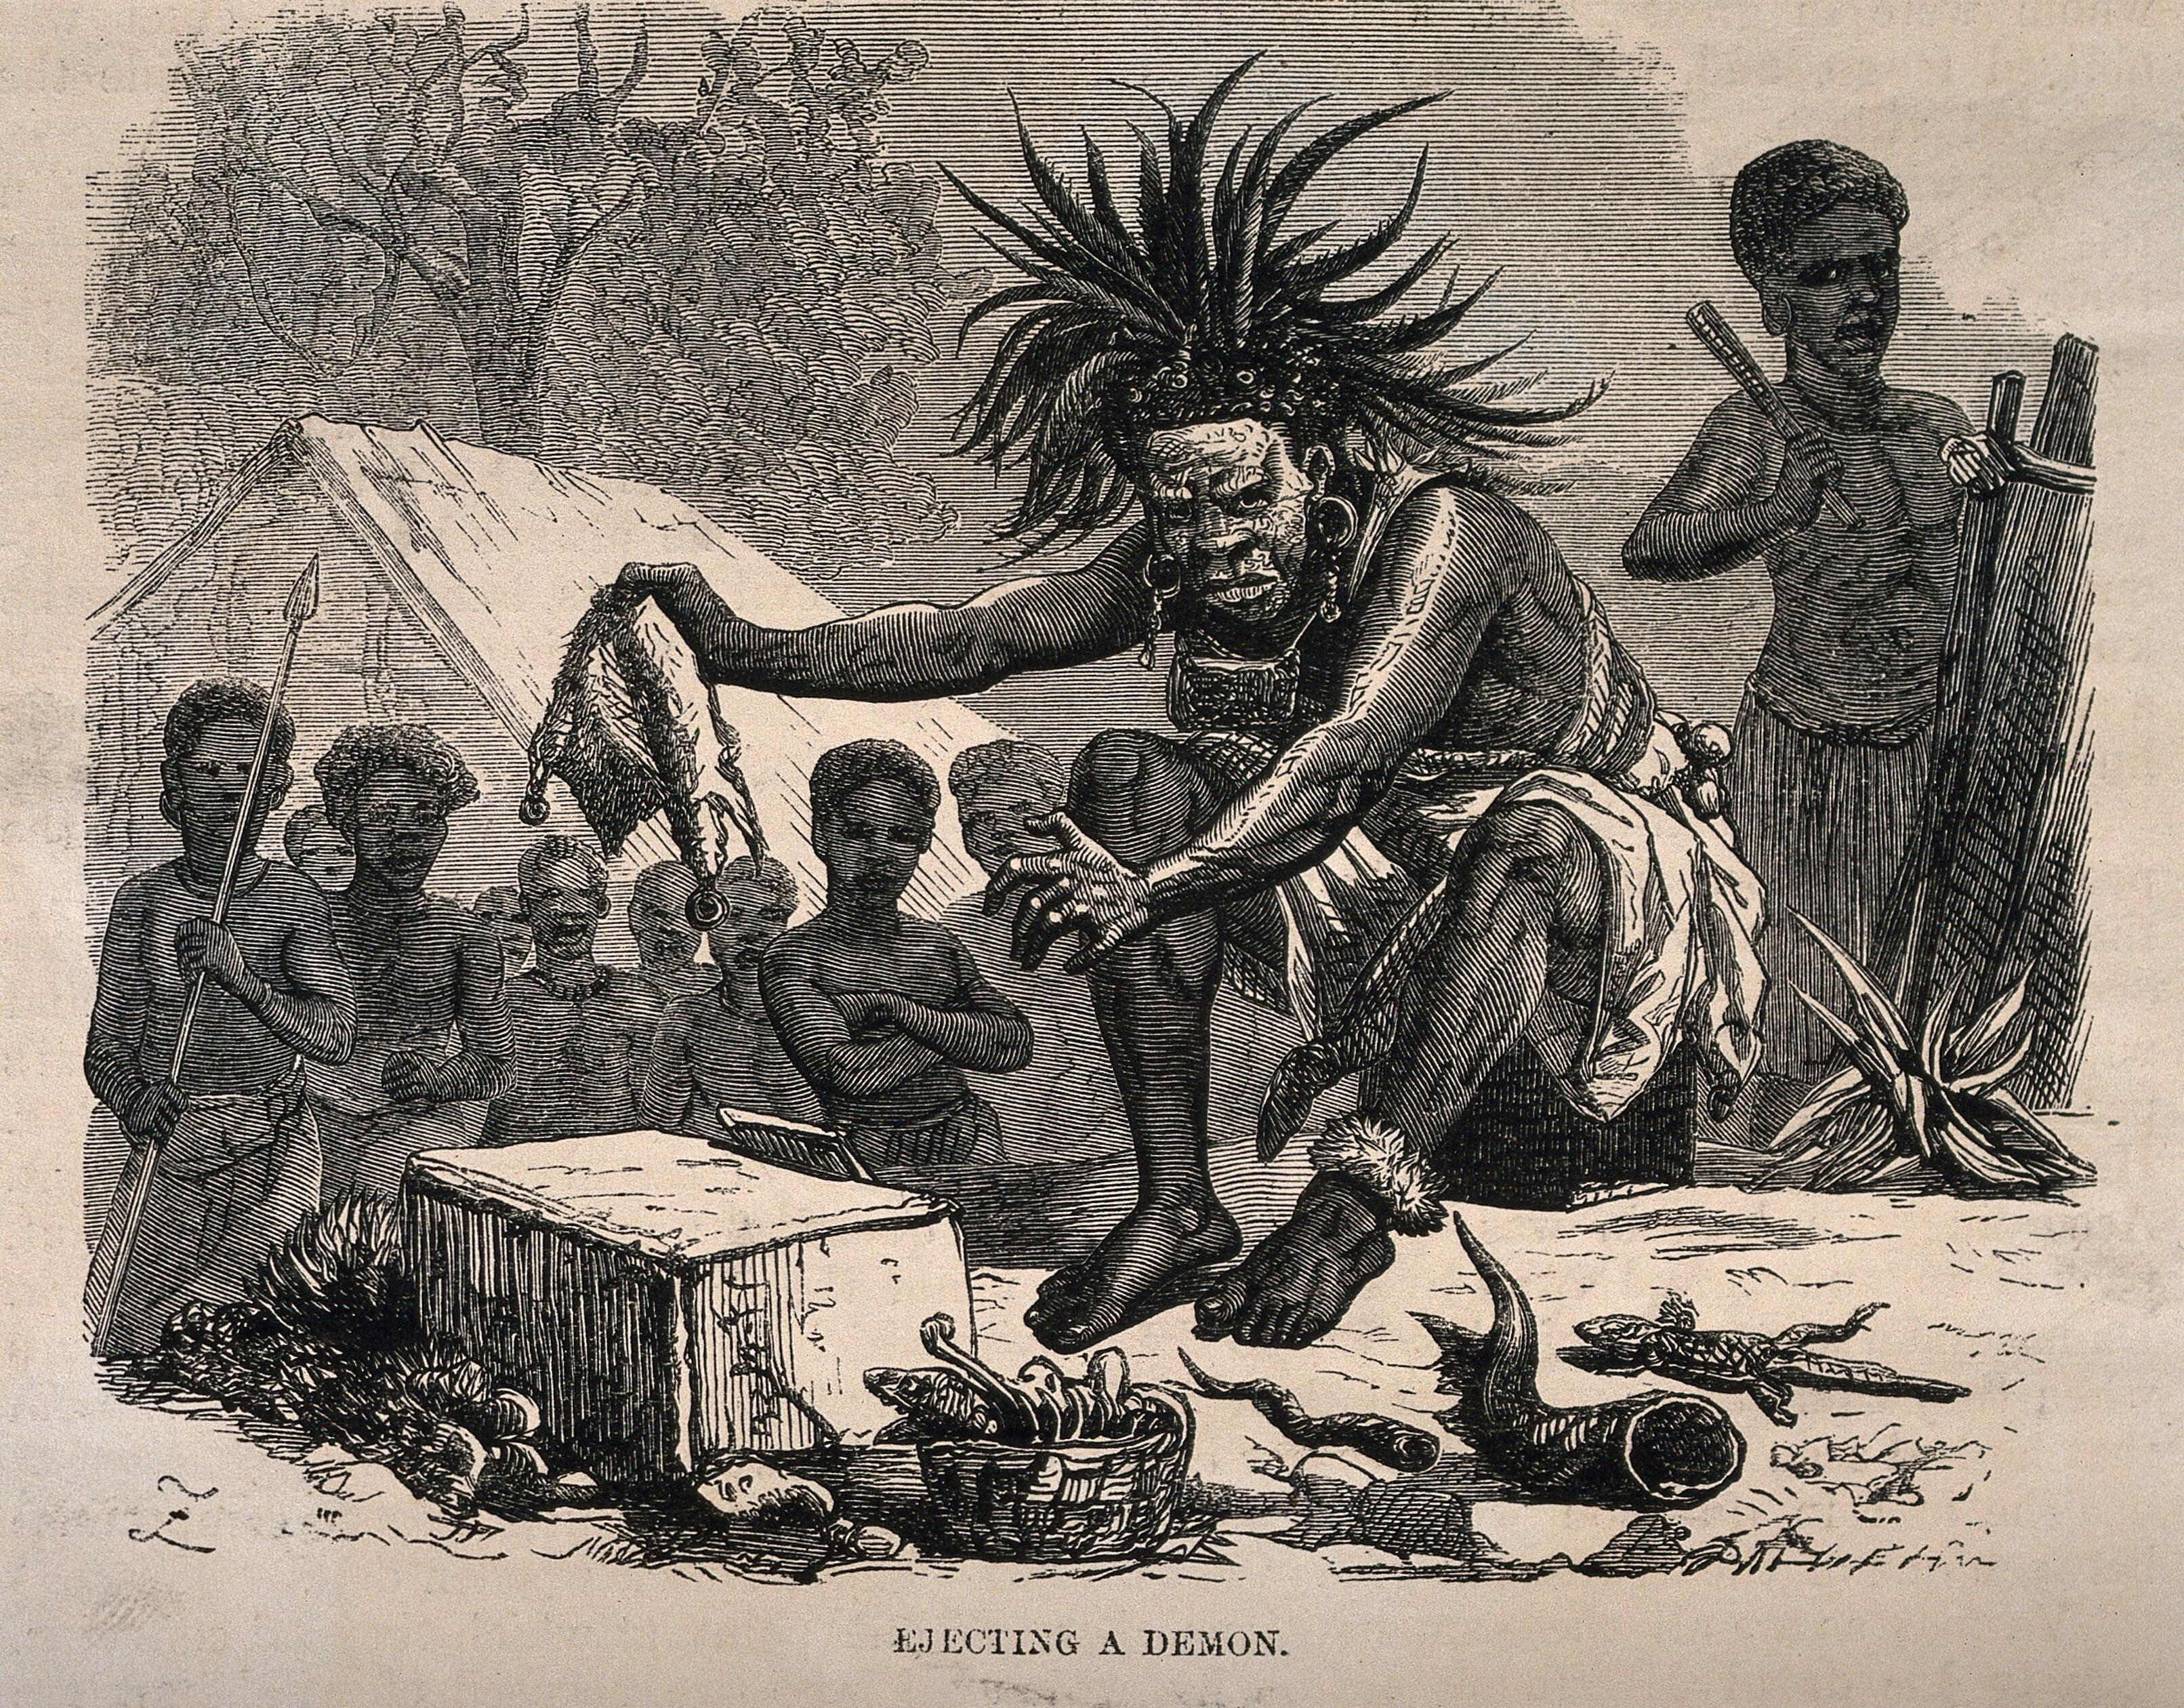 An African medicine man or shaman using symbols and small